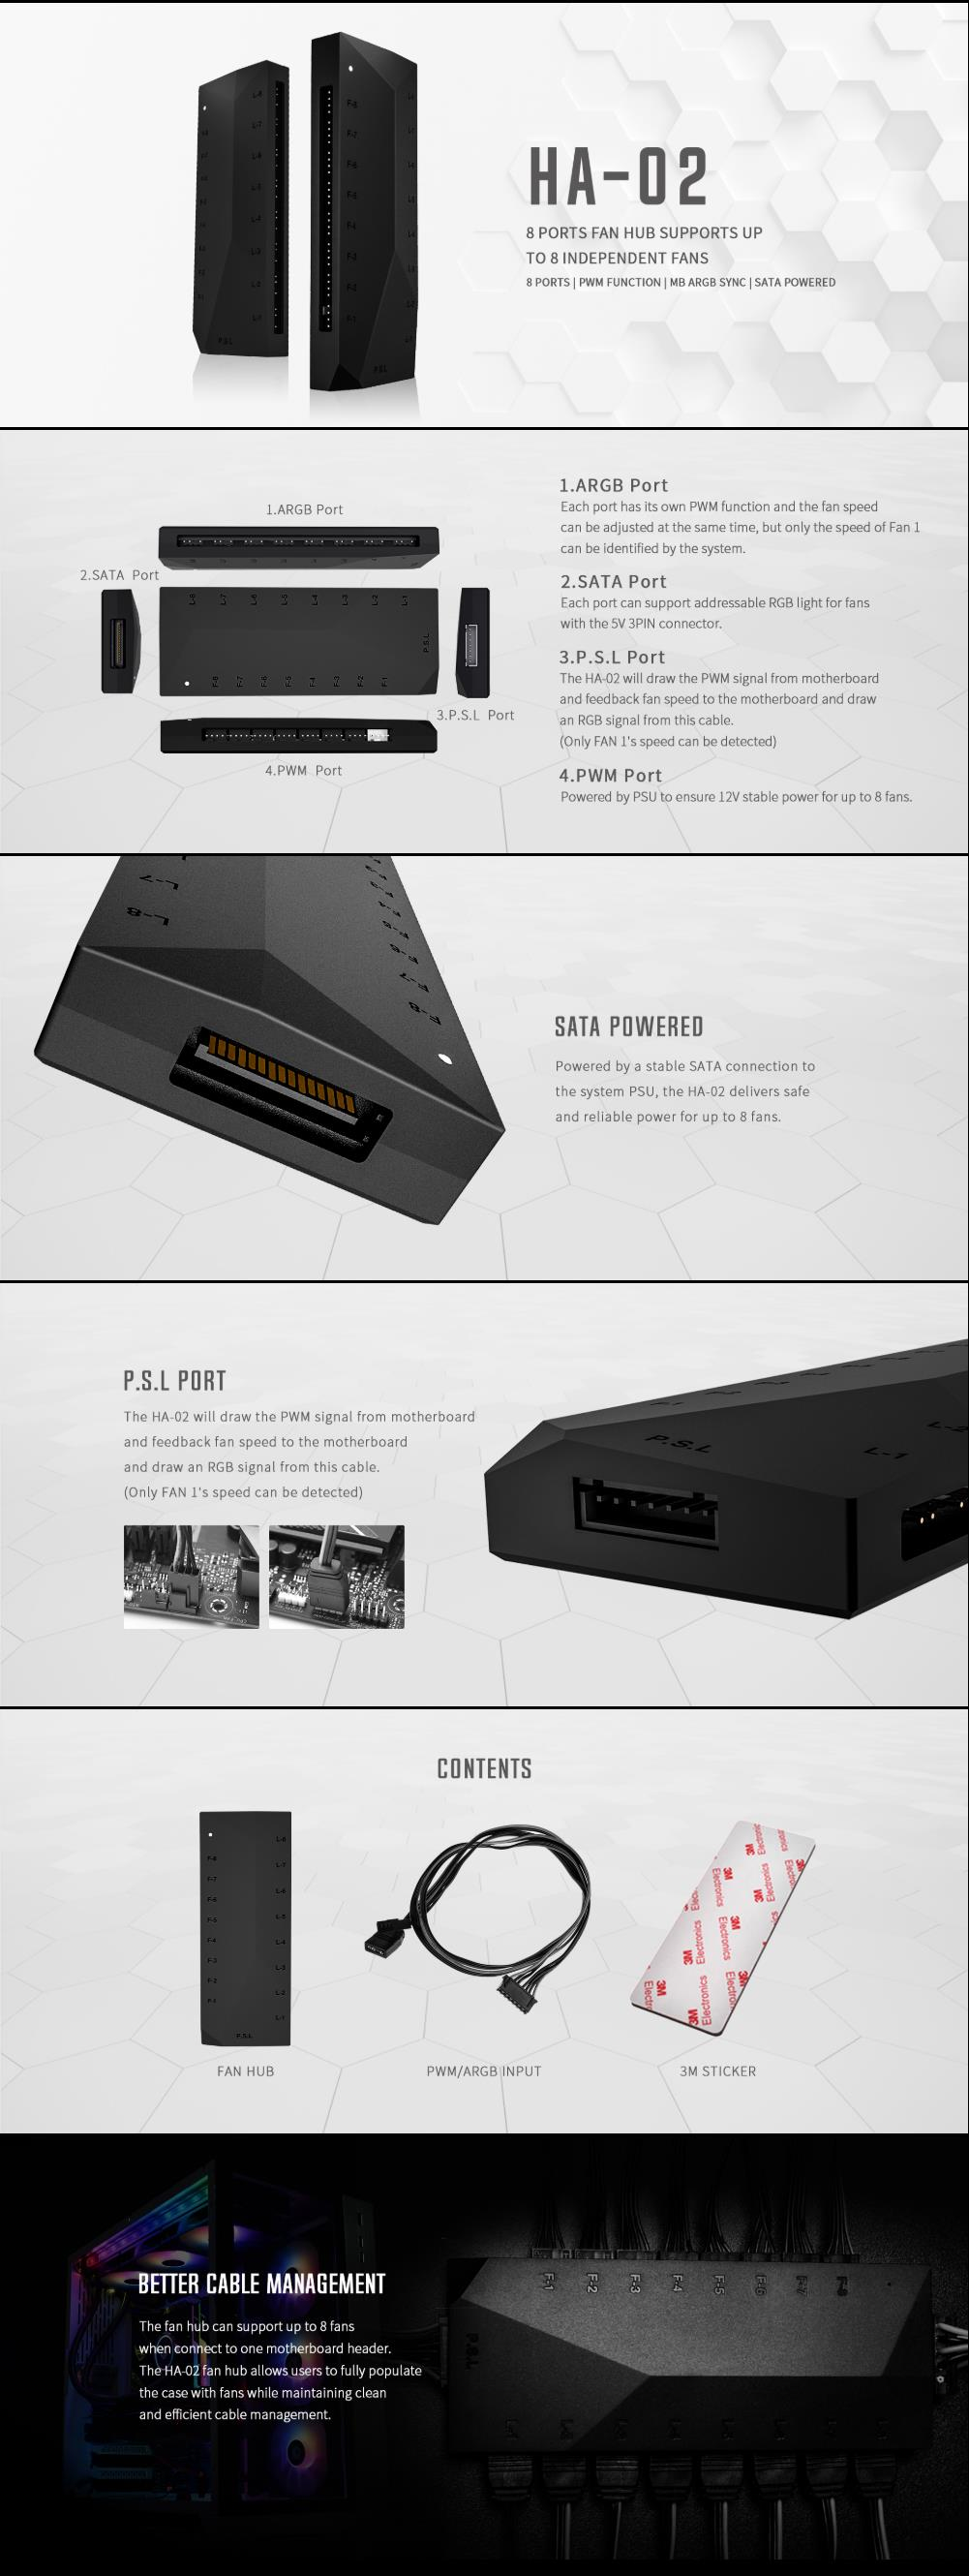 A large marketing image providing additional information about the product ID-COOLING HA-02 Addressable RGB PWM Fan Hub - Additional alt info not provided